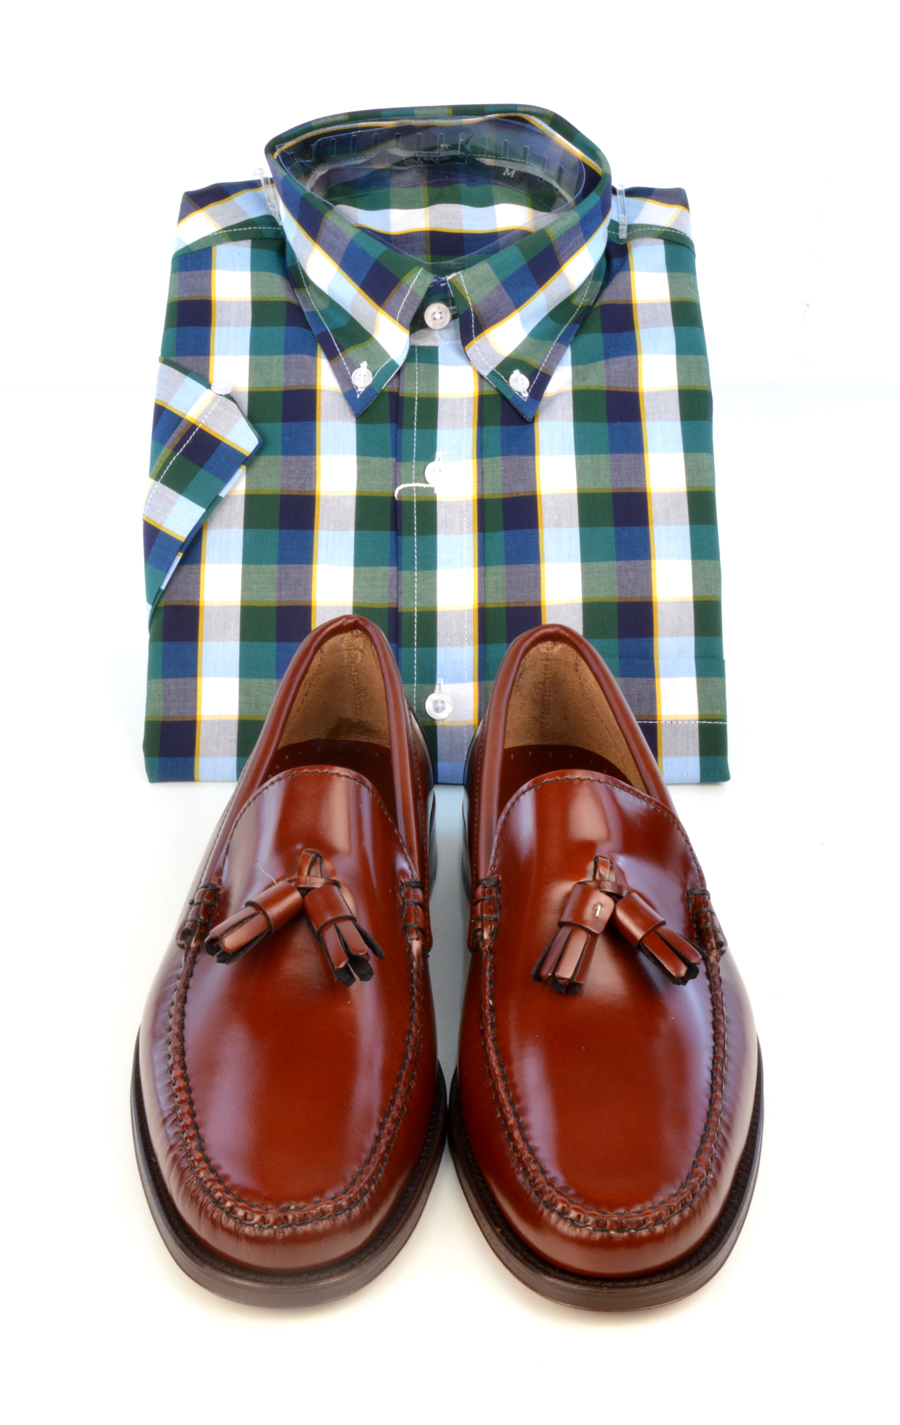 modshoes-chestnut-tassel-loafer-with-check-shirt